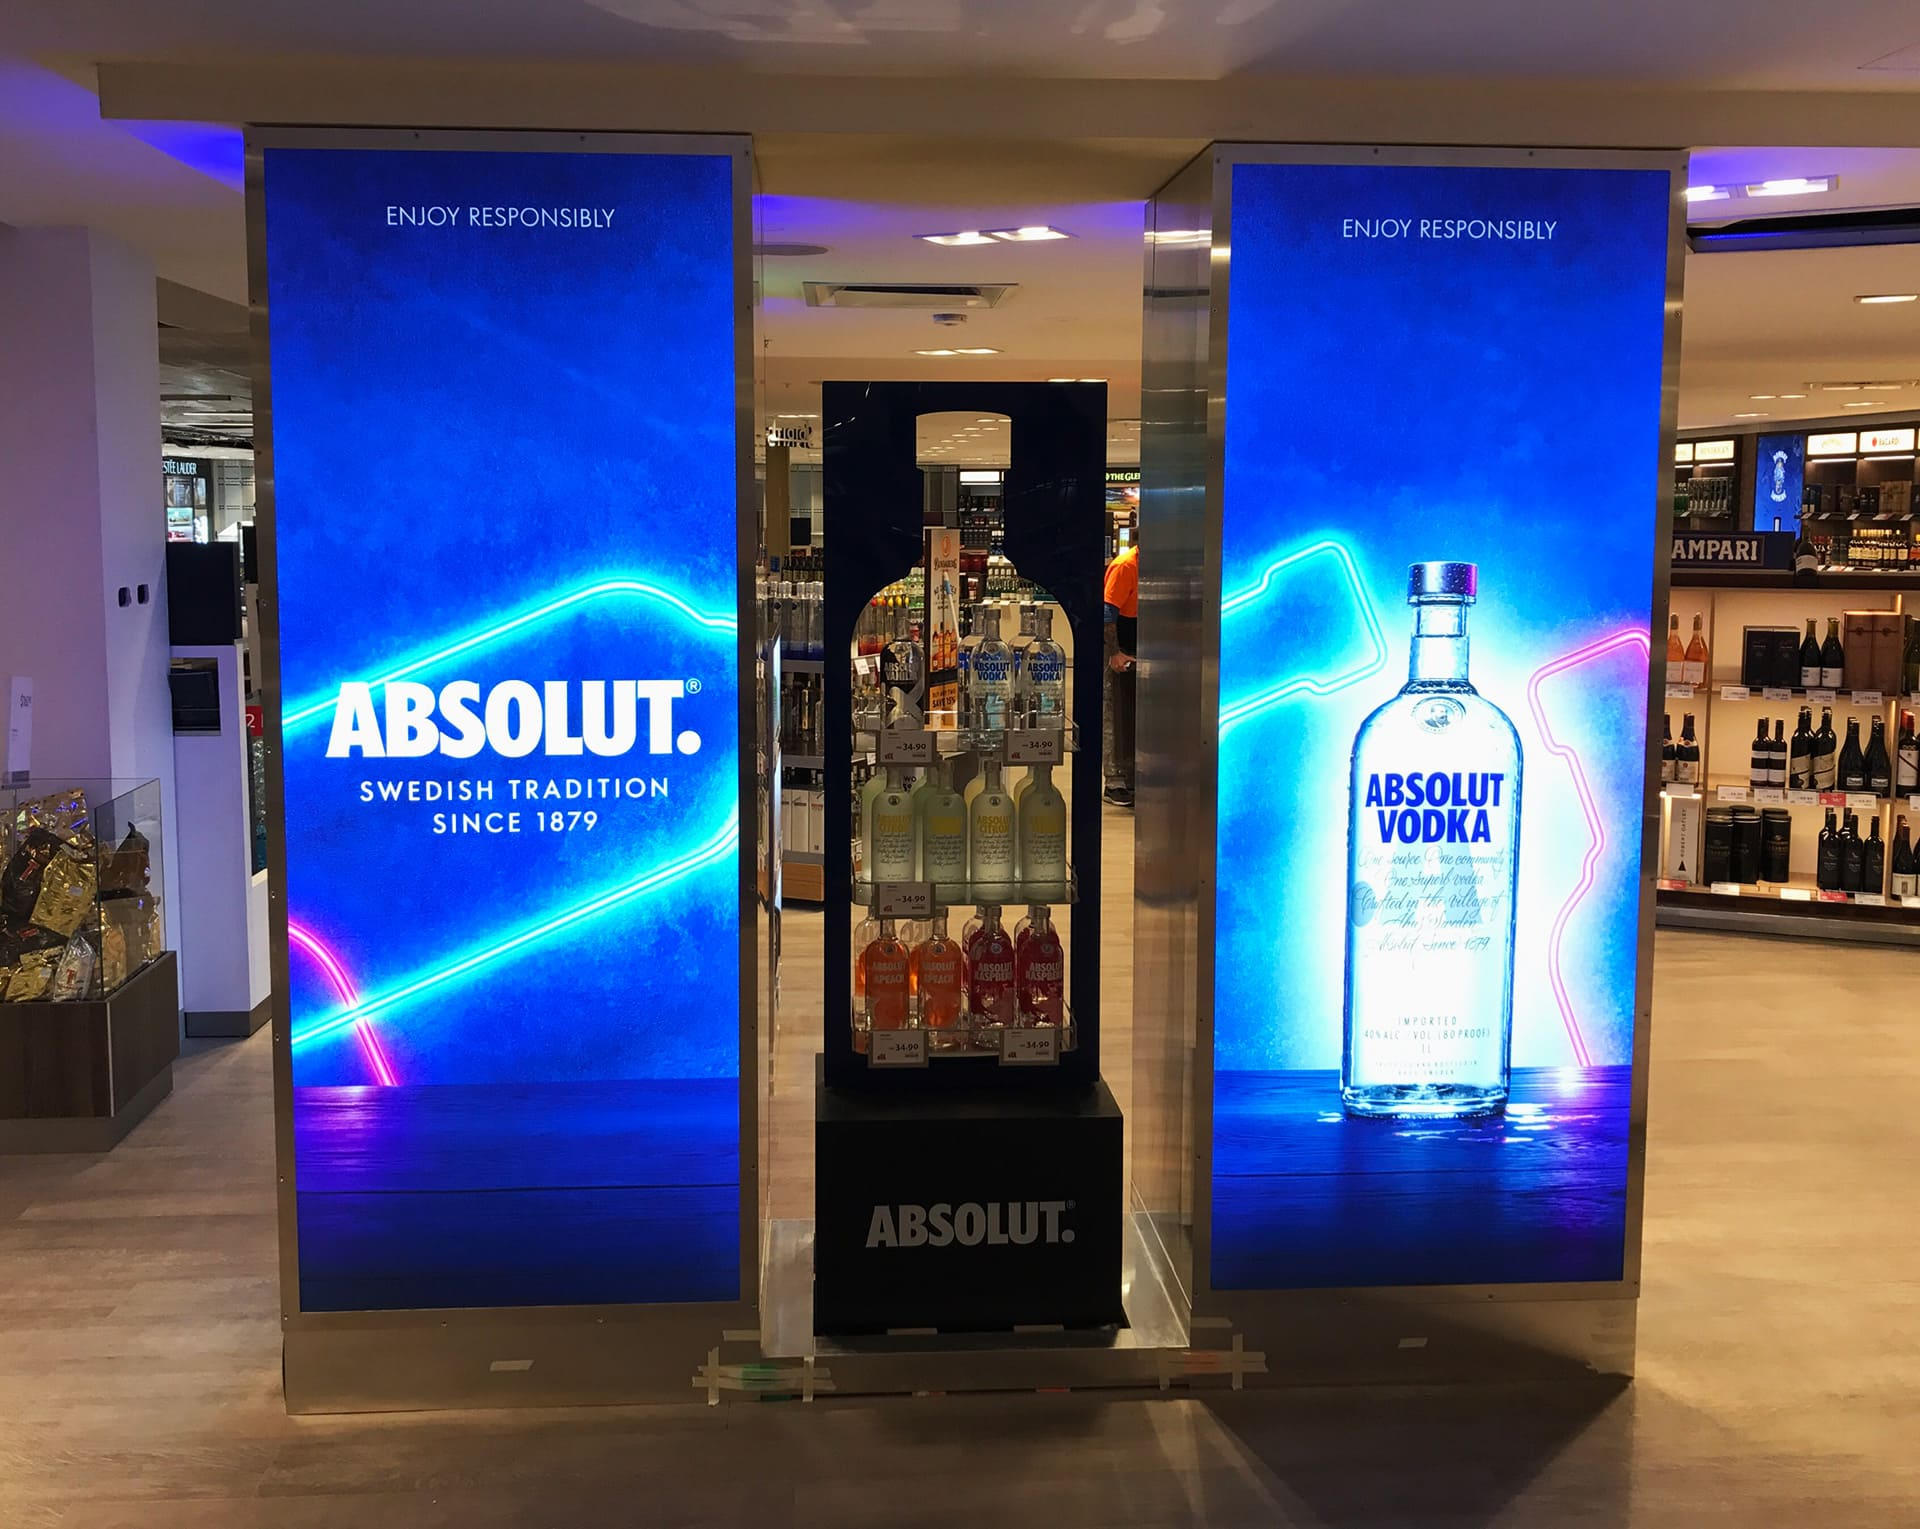 Absolut Vodka bottle and description on a LED sign